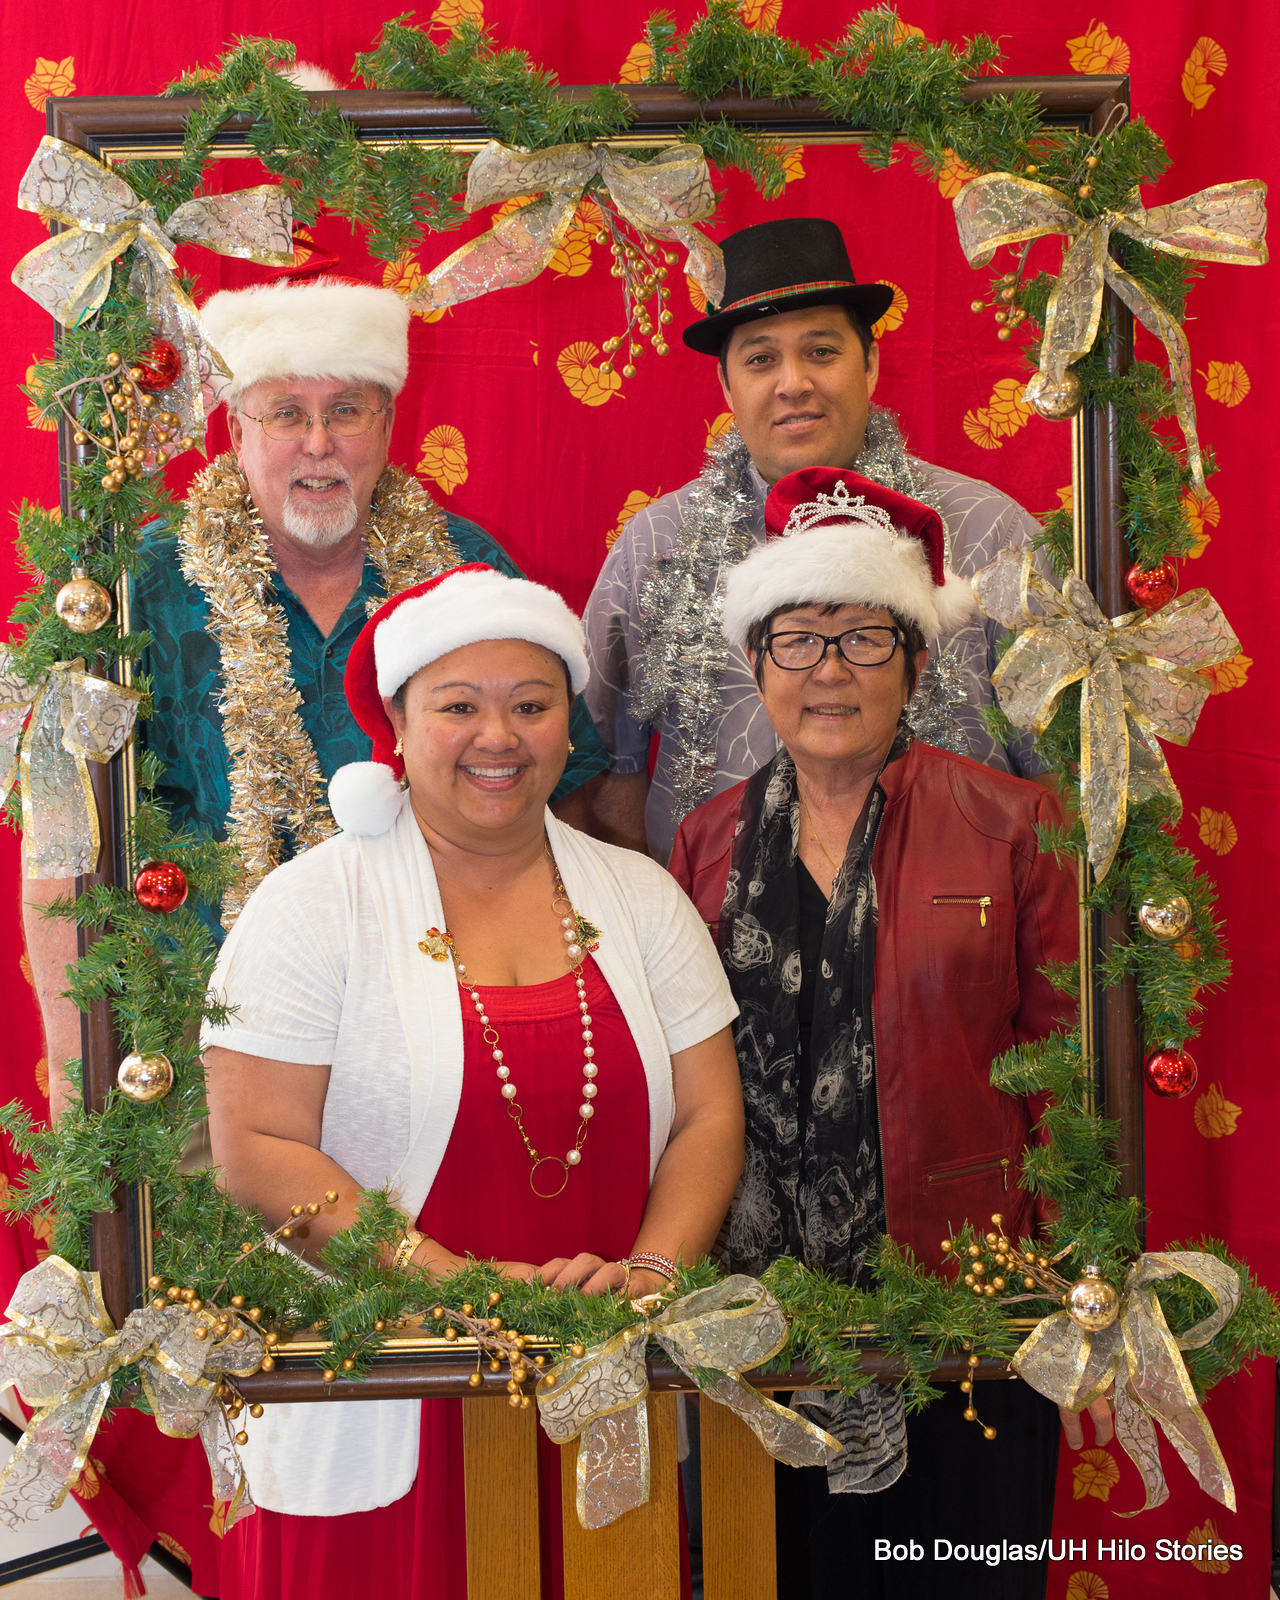 Marcia Sakai and vice chancellors in holiday hats.